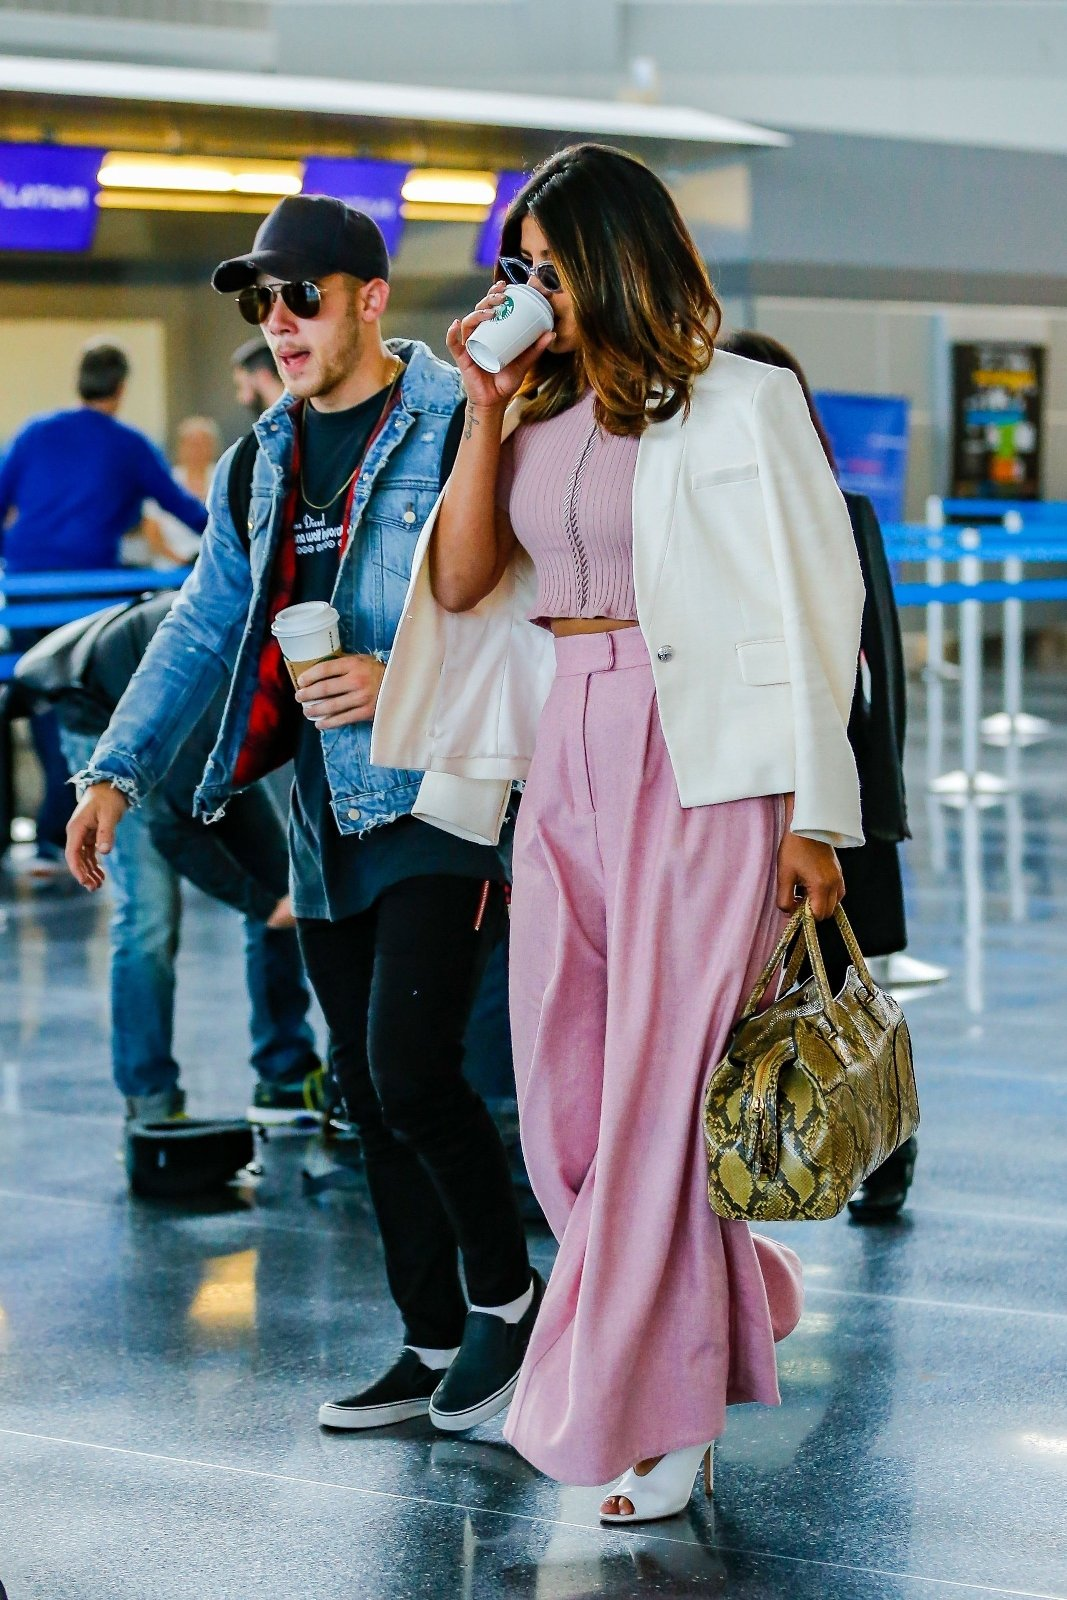 New York City, NY  - Actress Priyanka Chopra shows off her style in a beautiful pink and white ensemble while singer Nick Jonas goes for the casual look while touching down at JFK Airport in New York City. The hot new couple were both enjoying some coffee during their arrival.  Pictured: Nick Jonas, Priyanka Chopra    *UK Clients - Pictures Containing Children Please Pixelate Face Prior To Publication*, Image: 374265029, License: Rights-managed, Restrictions: , Model Release: no, Credit line: Profimedia, AKM-GSI